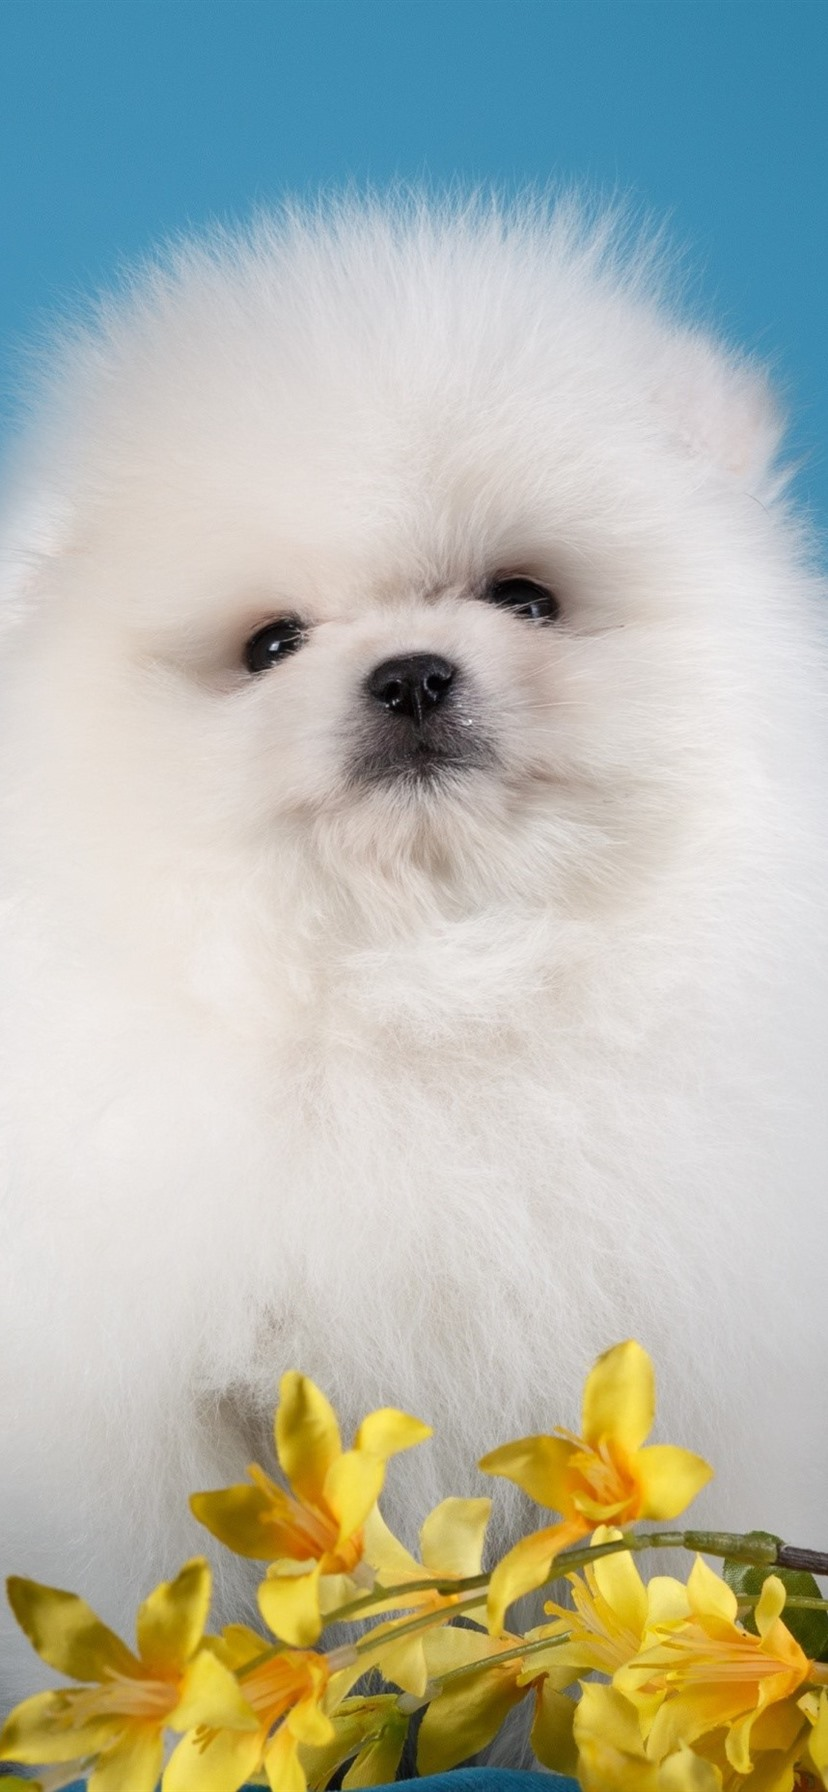 White Furry Puppy Black Background Yellow Flowers 828x1792